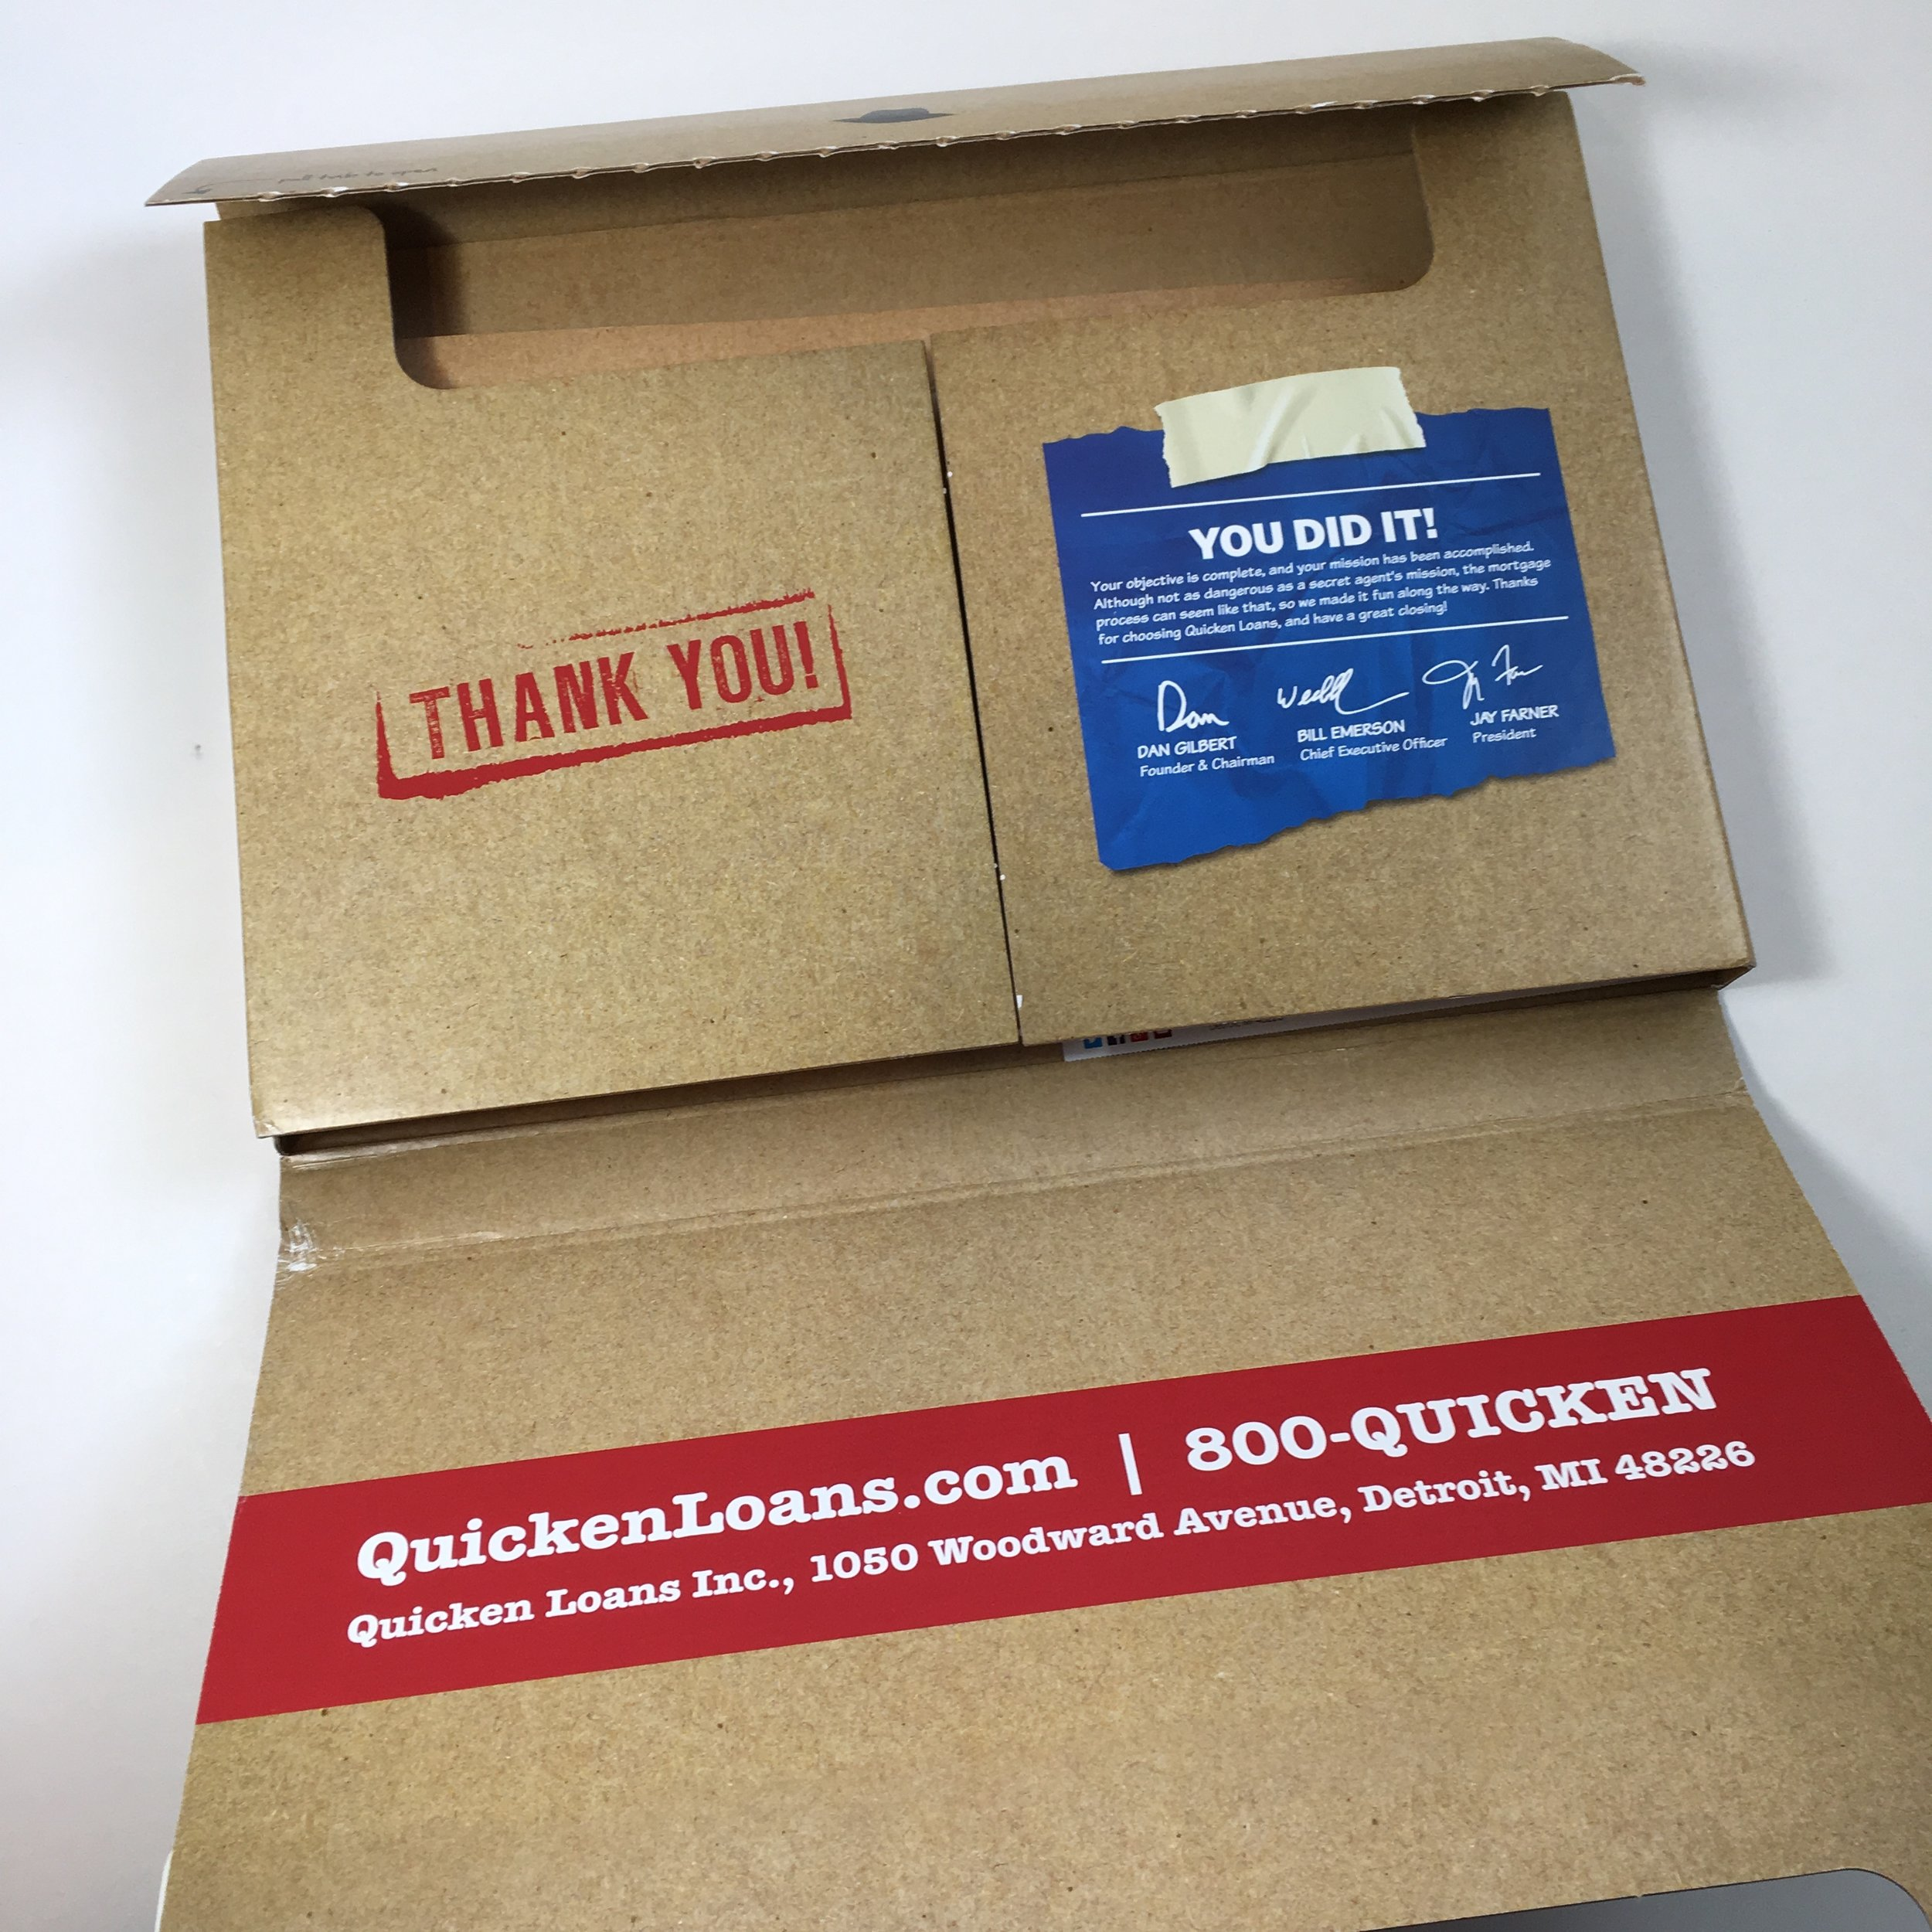 Quicken-Loans-Mortgage-Possible-Closing-Box-Packaging-Inside.JPG